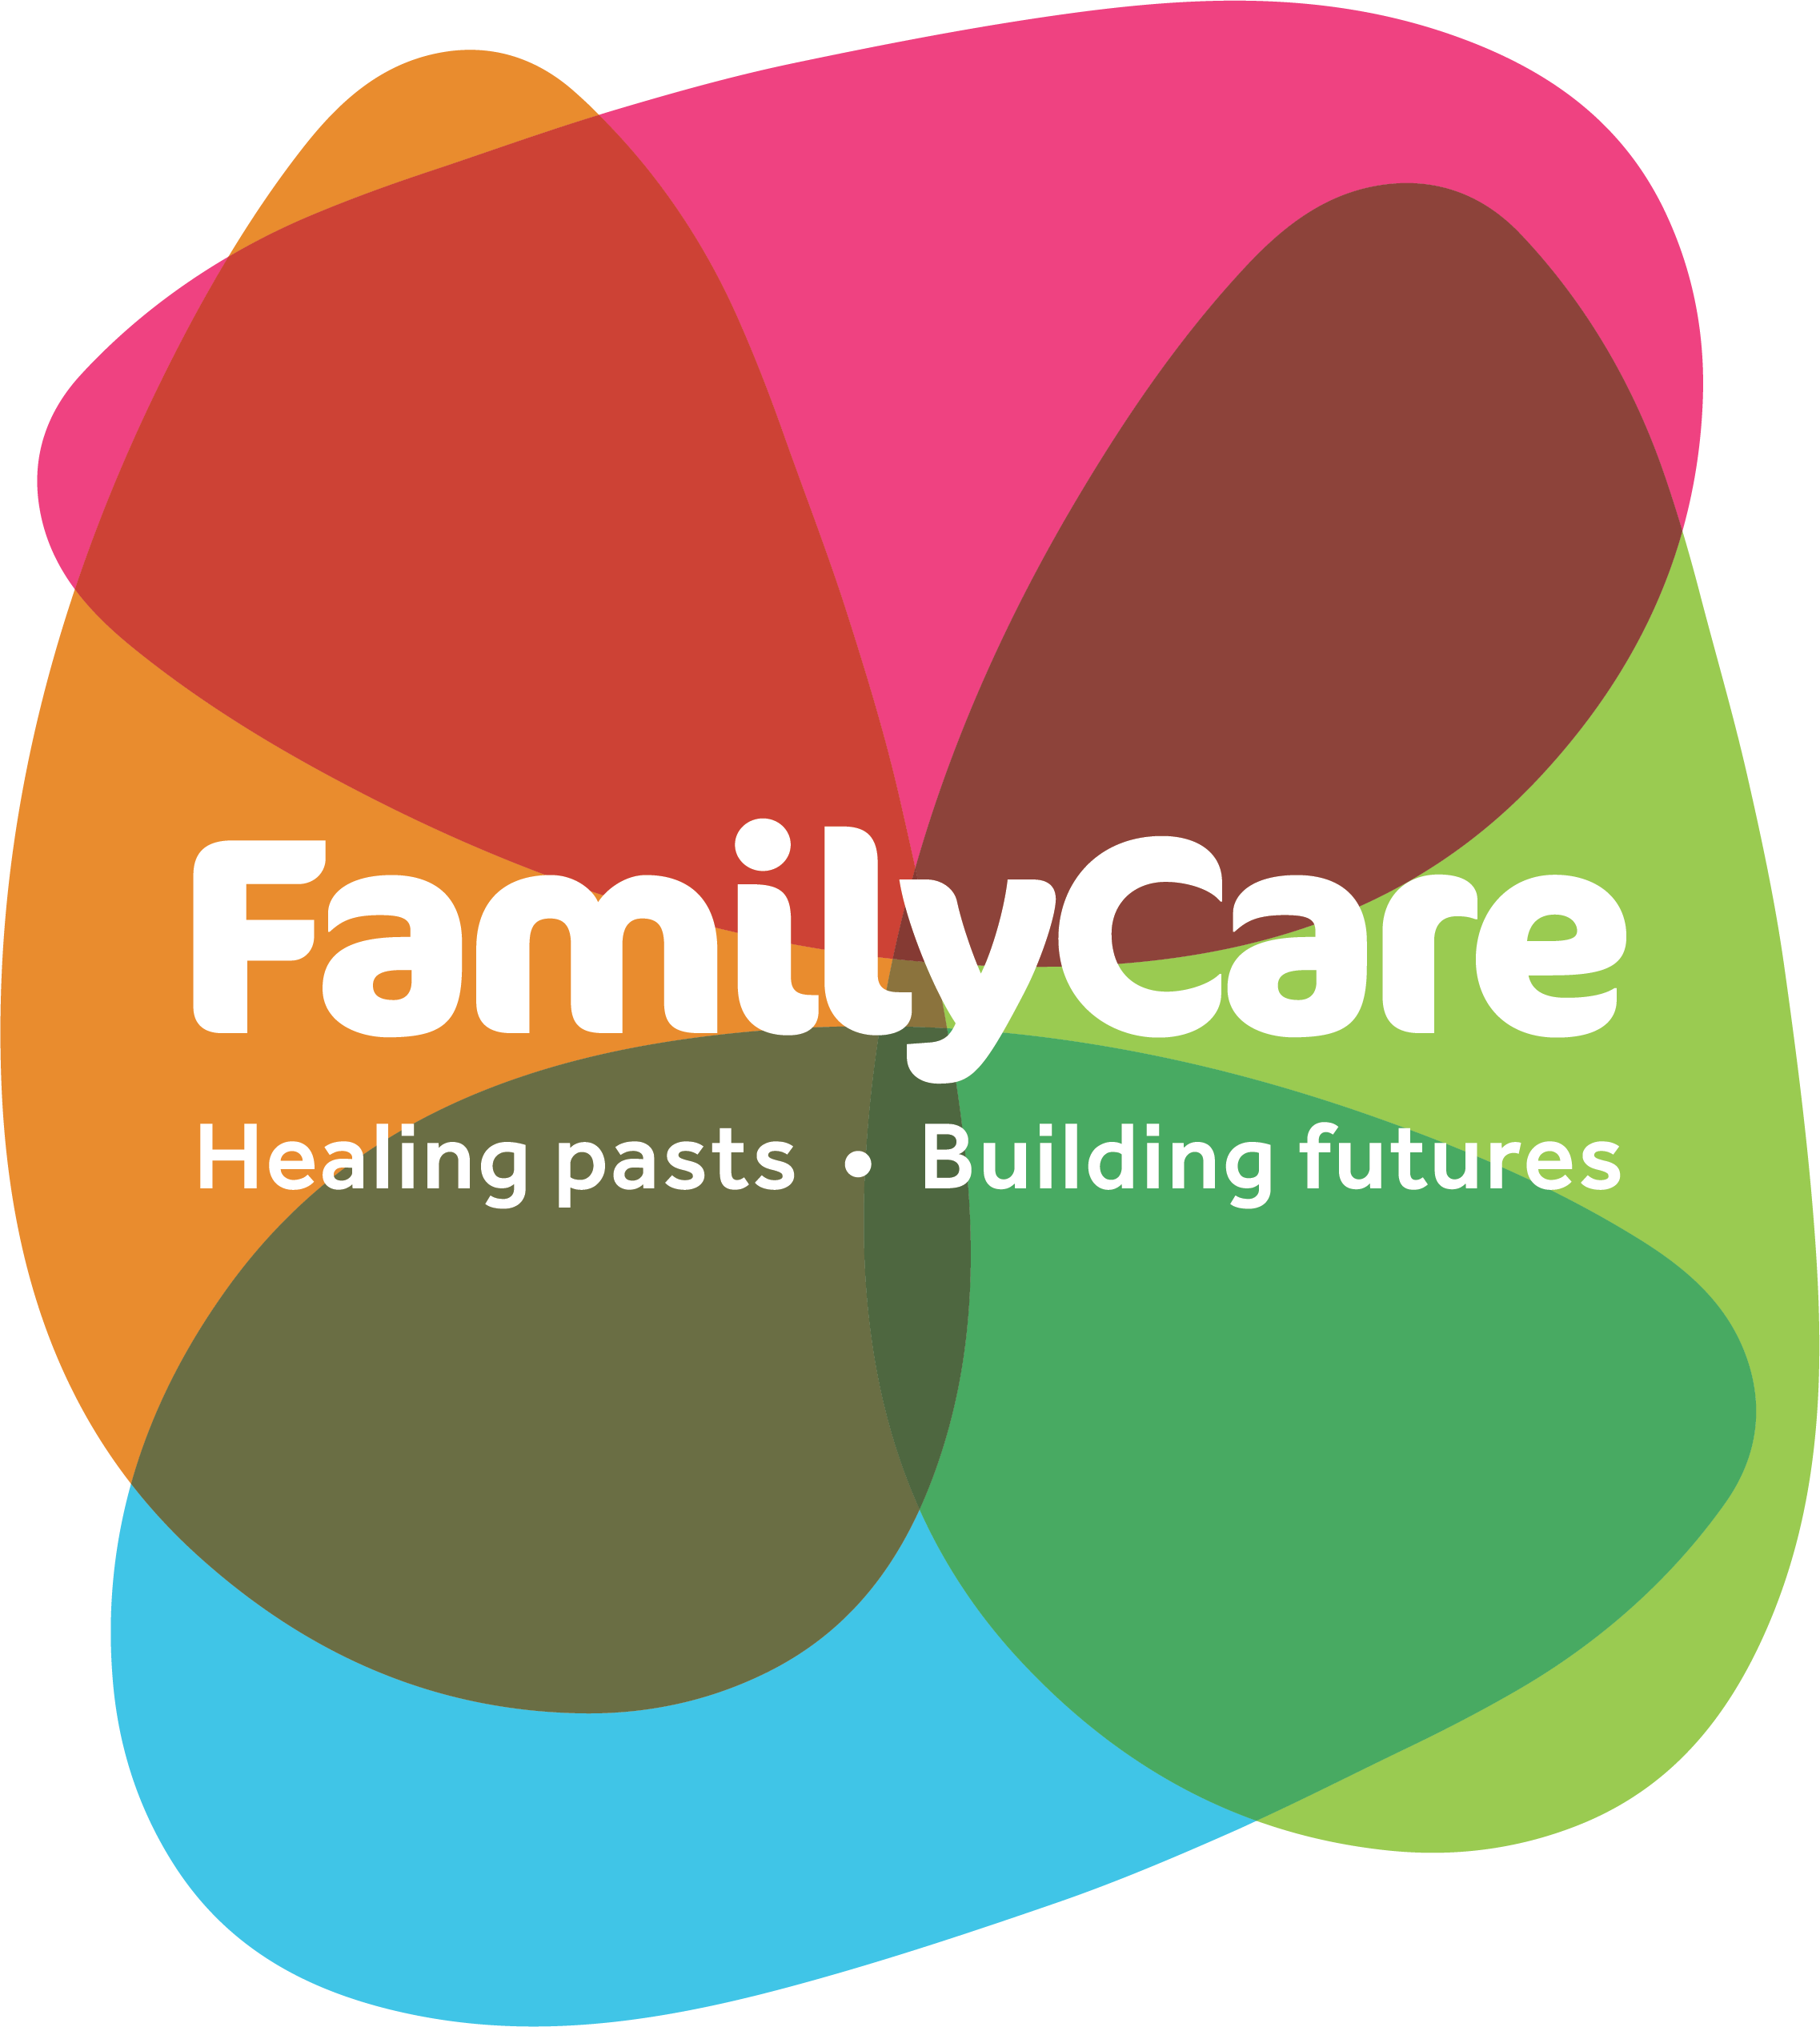 The Family Care Group logo